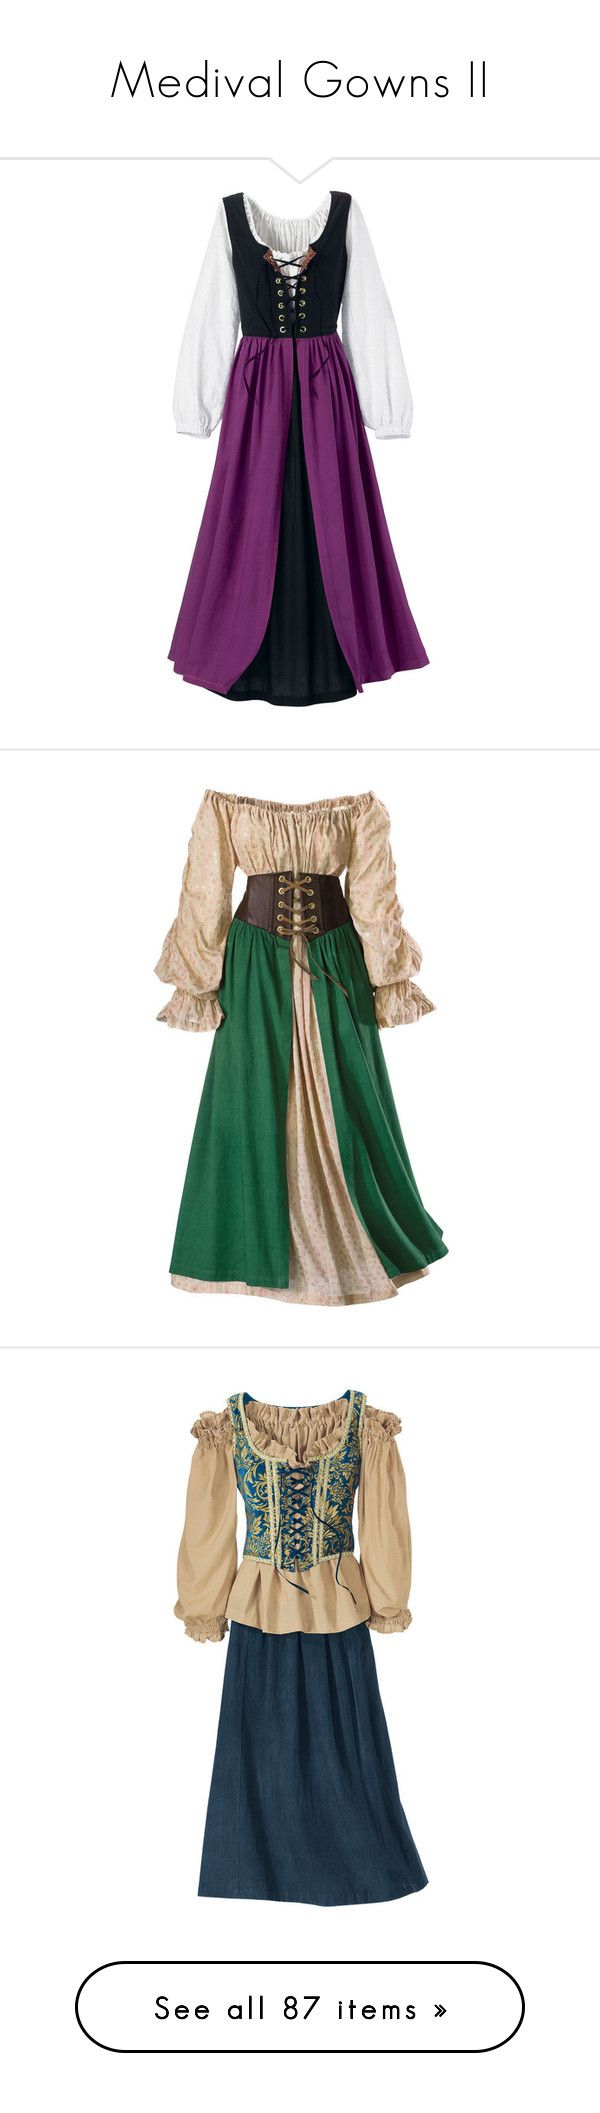 """""""Medival Gowns II"""" by savagedamsel ❤ liked on Polyvore featuring costumes, dresses, medieval, gowns, goth halloween costumes, purple costumes, renaissance fair costumes, renaissance costume, gothic halloween costumes and plus size"""